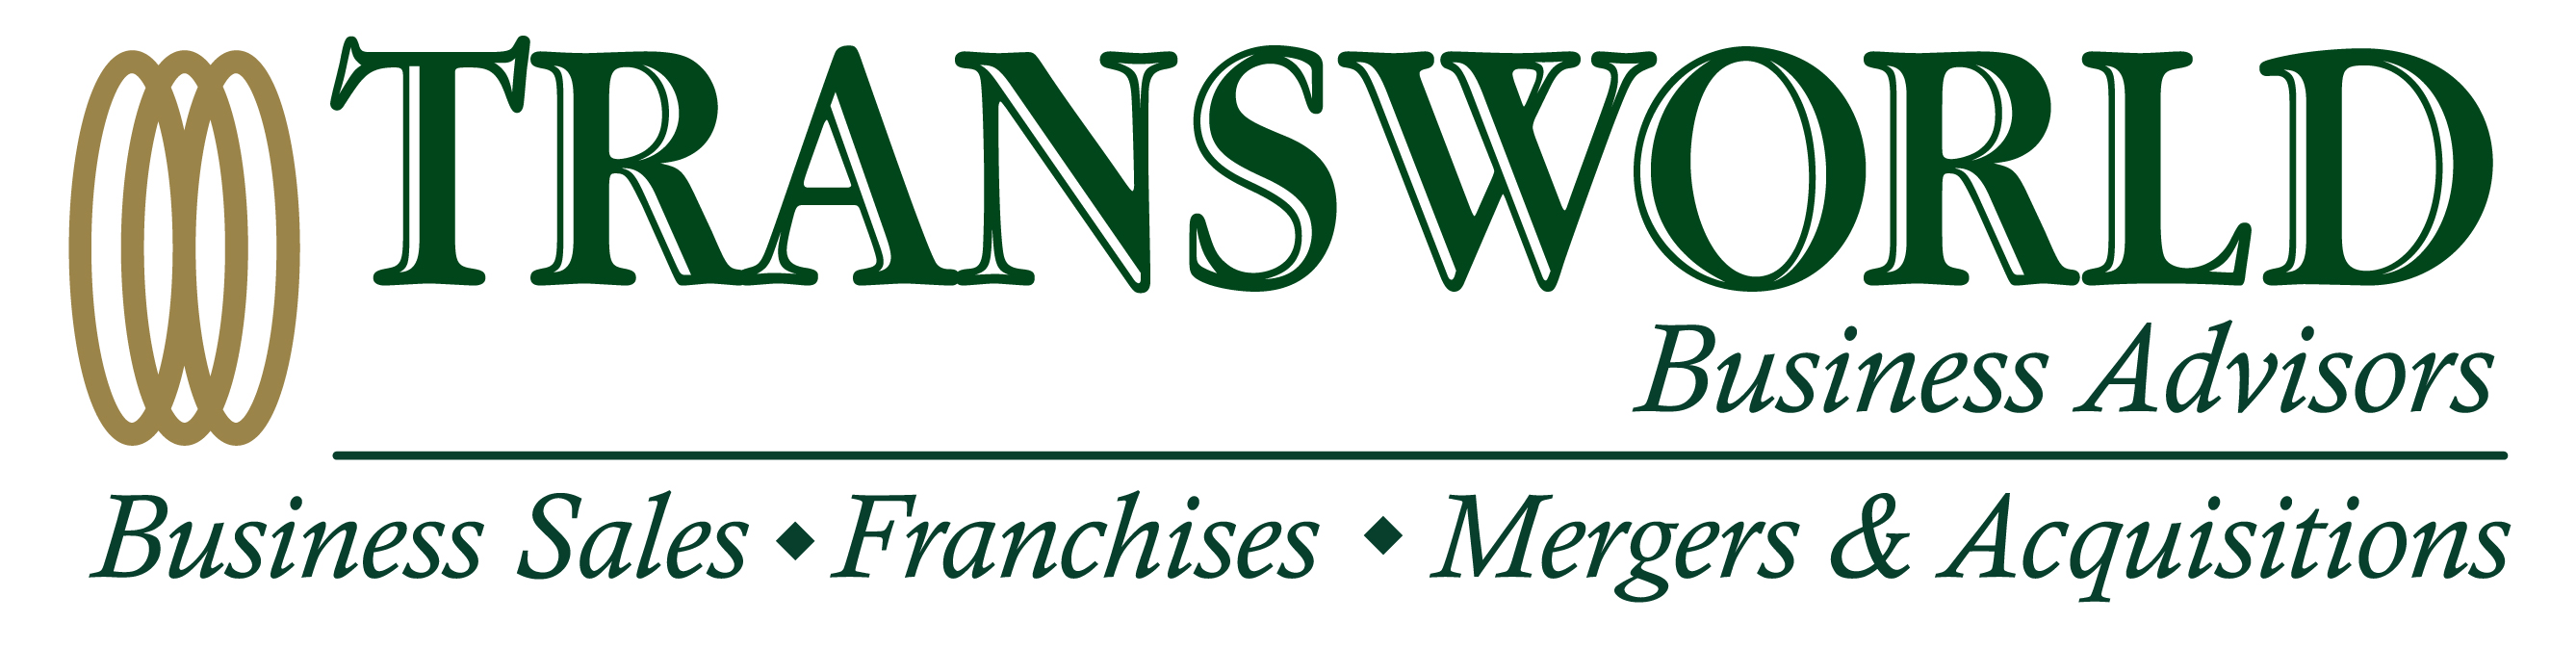 TRANSWORLD BUSINESS ADVISORS OF DOWNERS GROVE